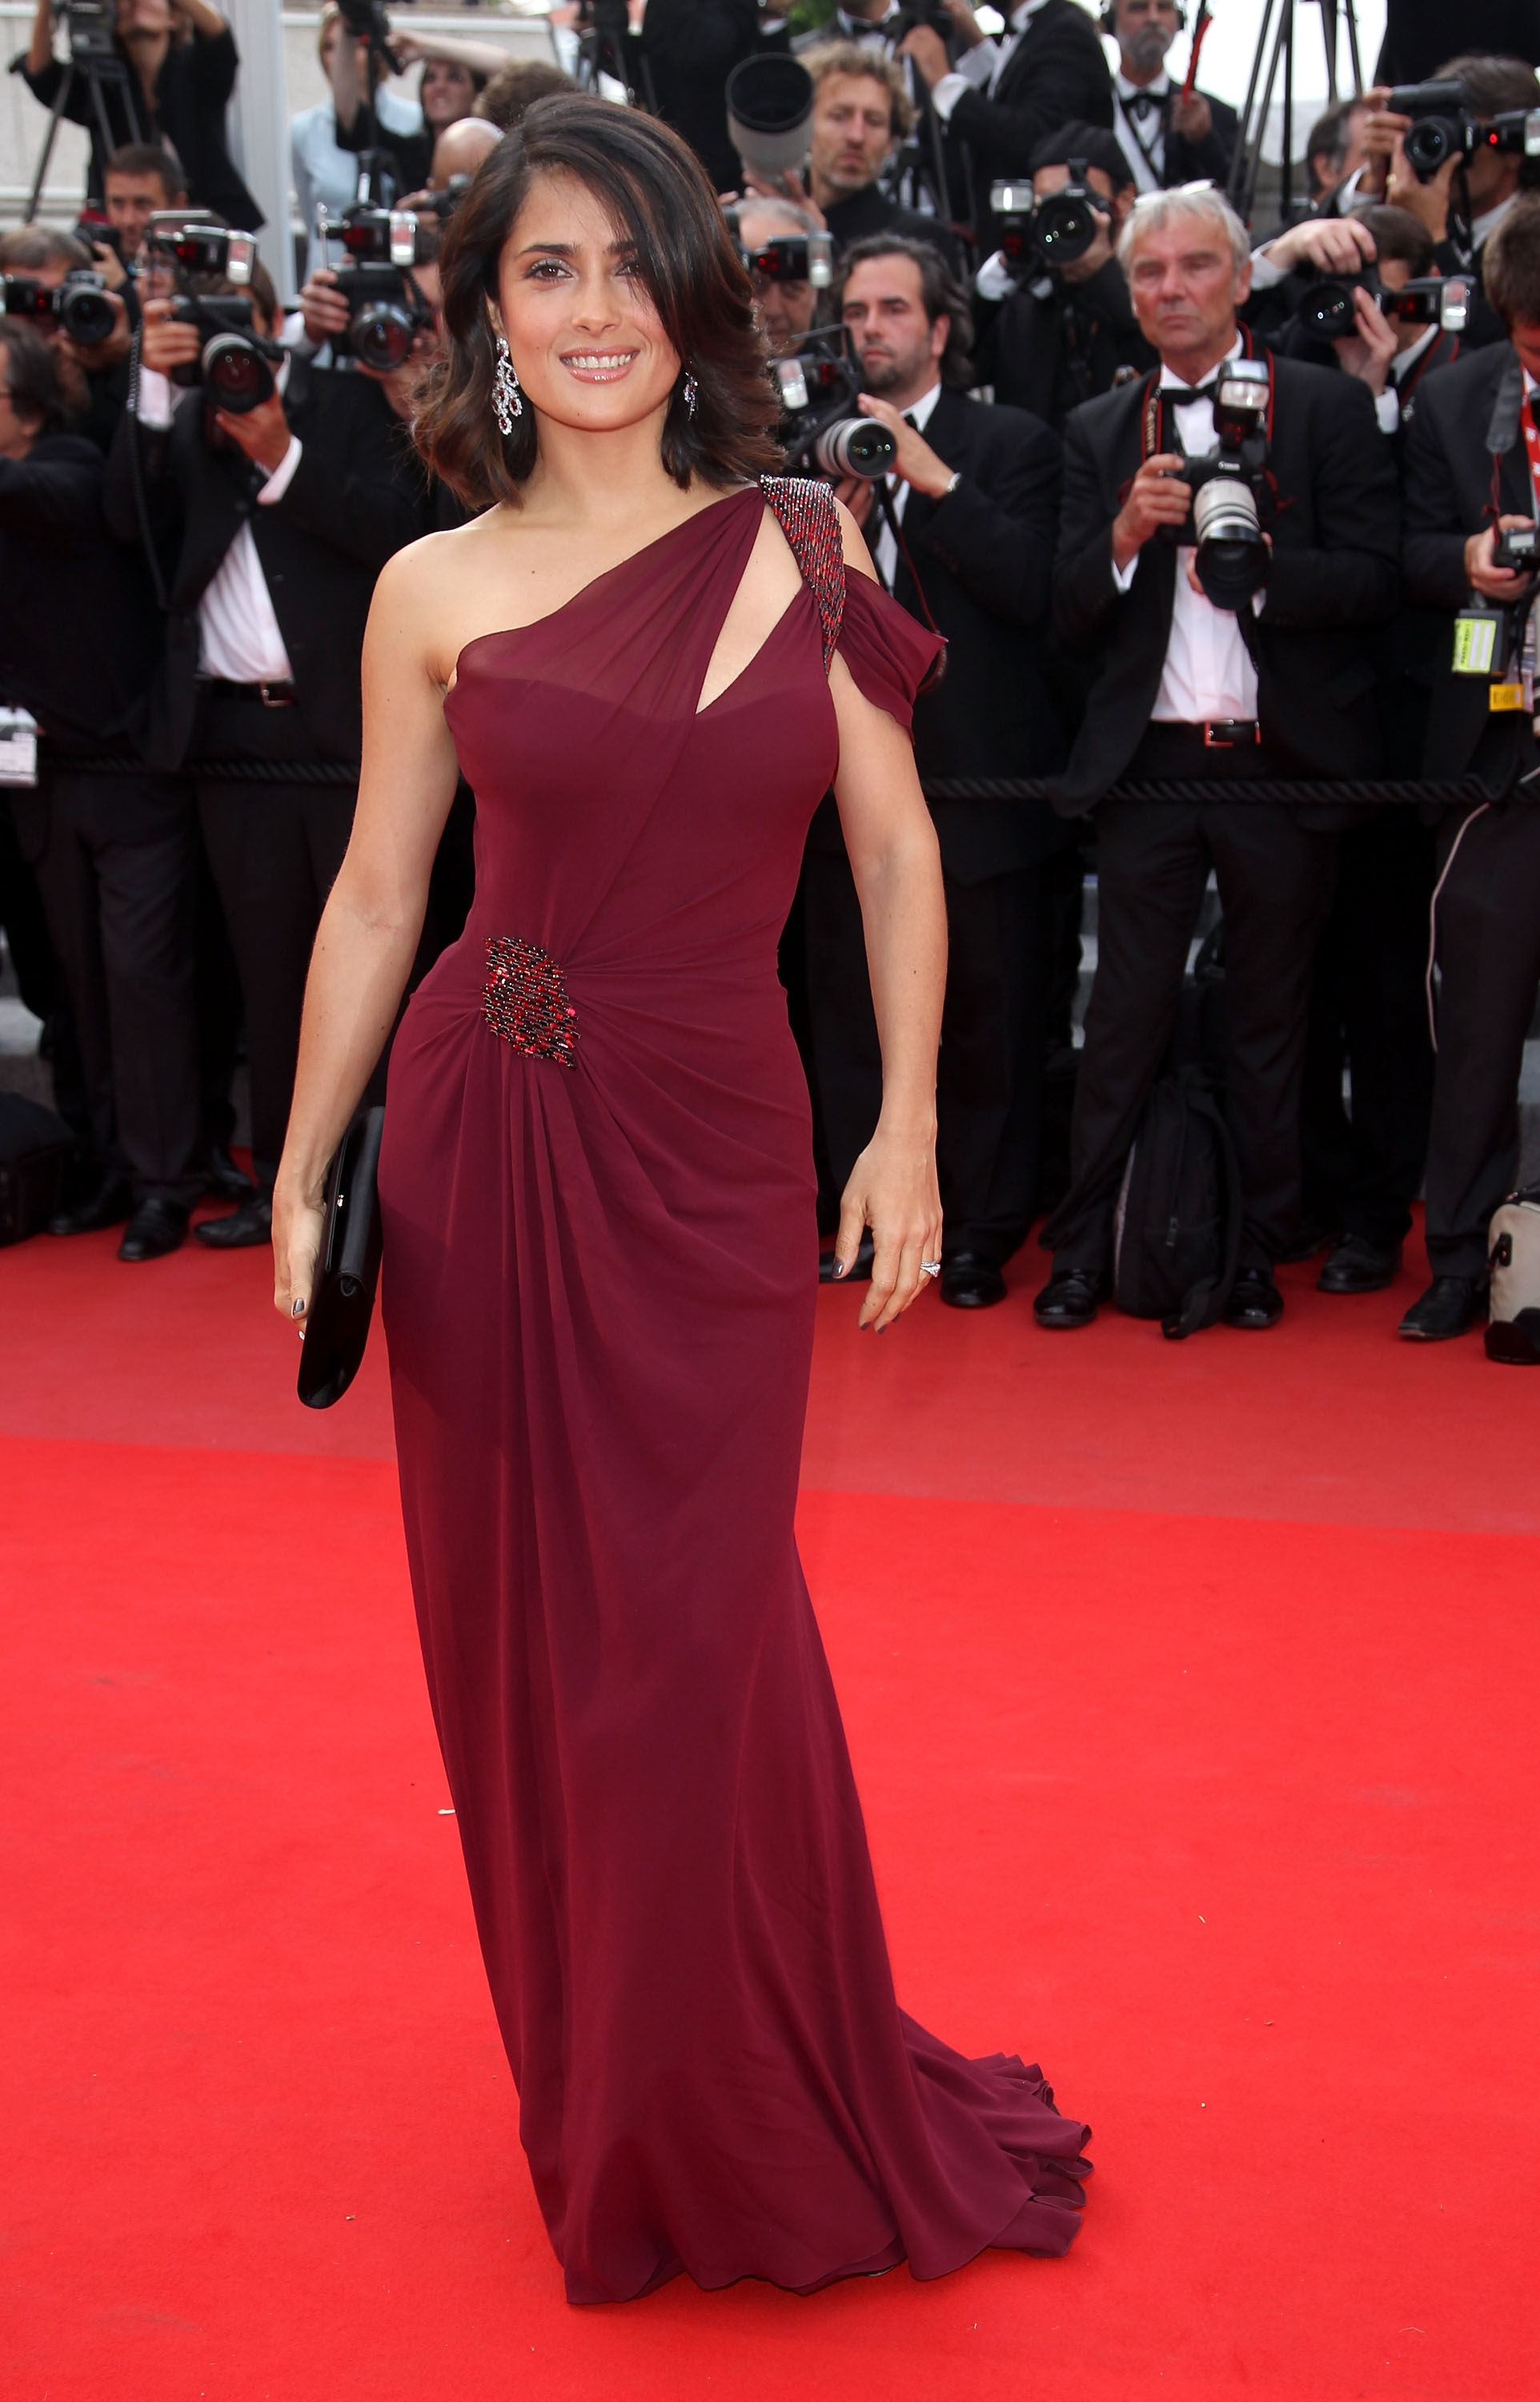 d8760b1c09a Salma Hayek attends the 'Robin Hood' Premiere at the Palais des Festivals  during the